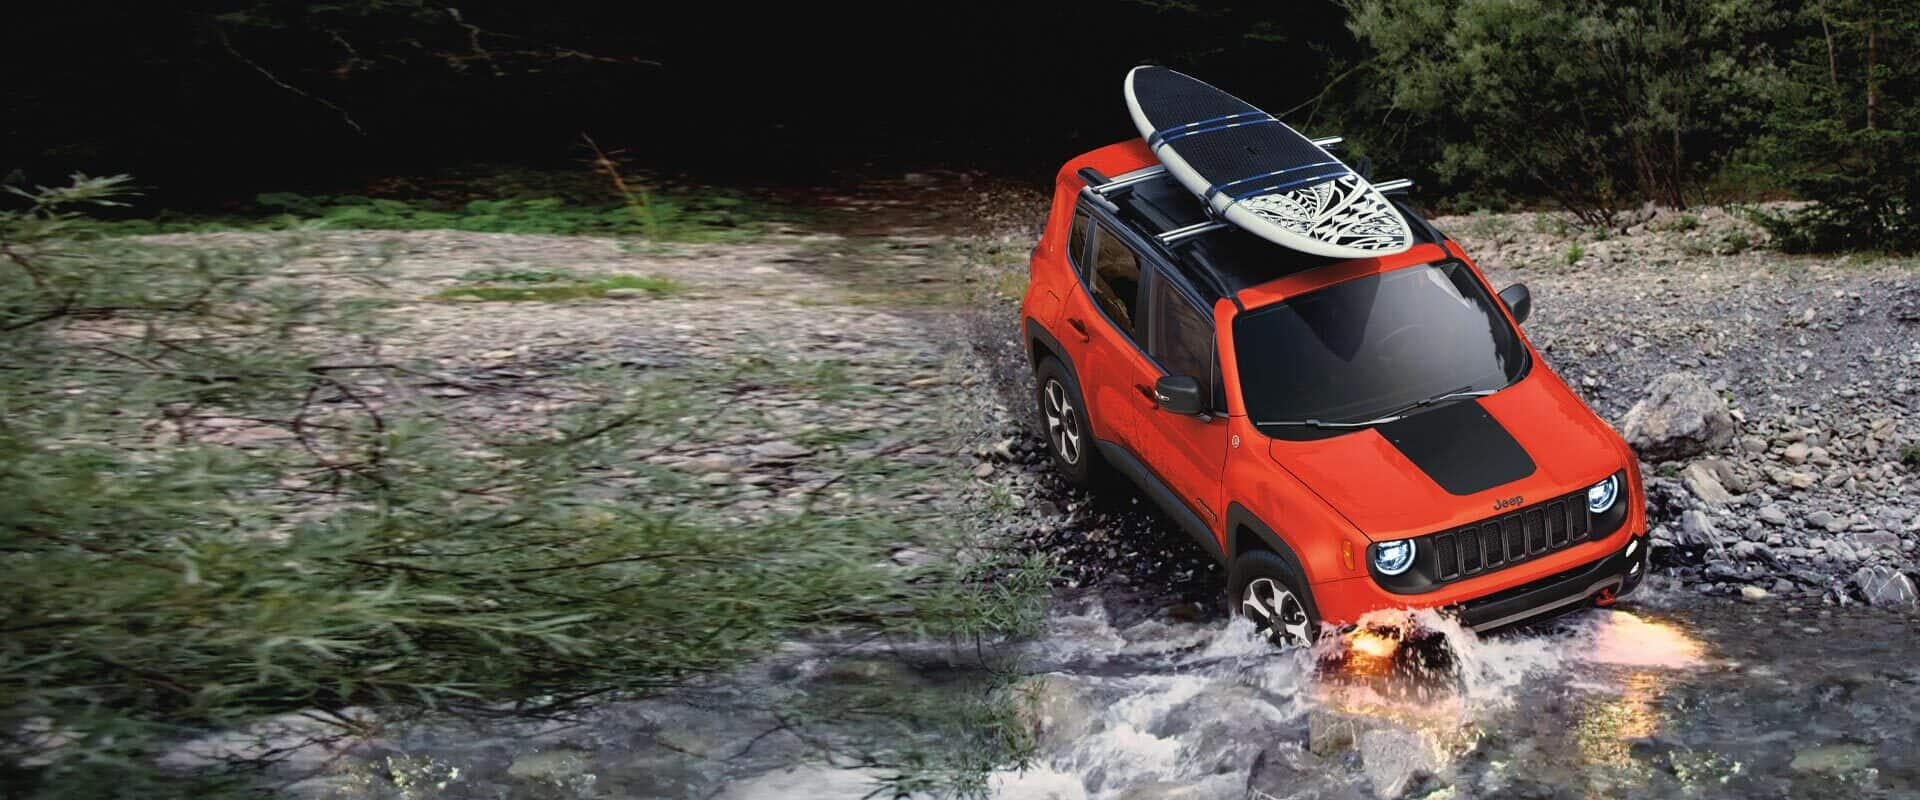 The 2020 Jeep Renegade fording a shallow stream with a surfboard attached to its roof rack.